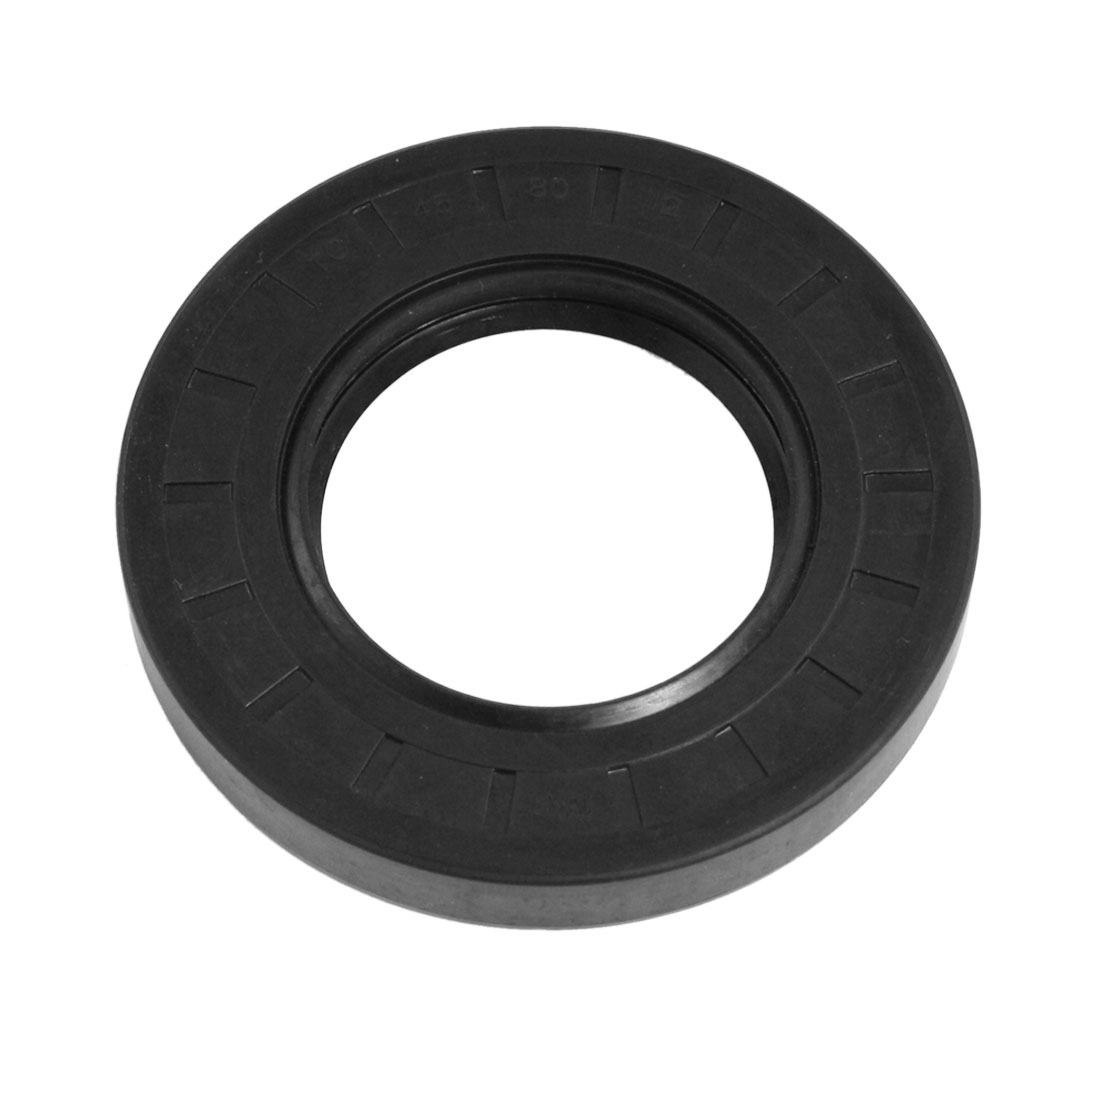 Steel Spring NBR Double Lip TC Oil Shaft Seal 45mm x 80mm x 12mm